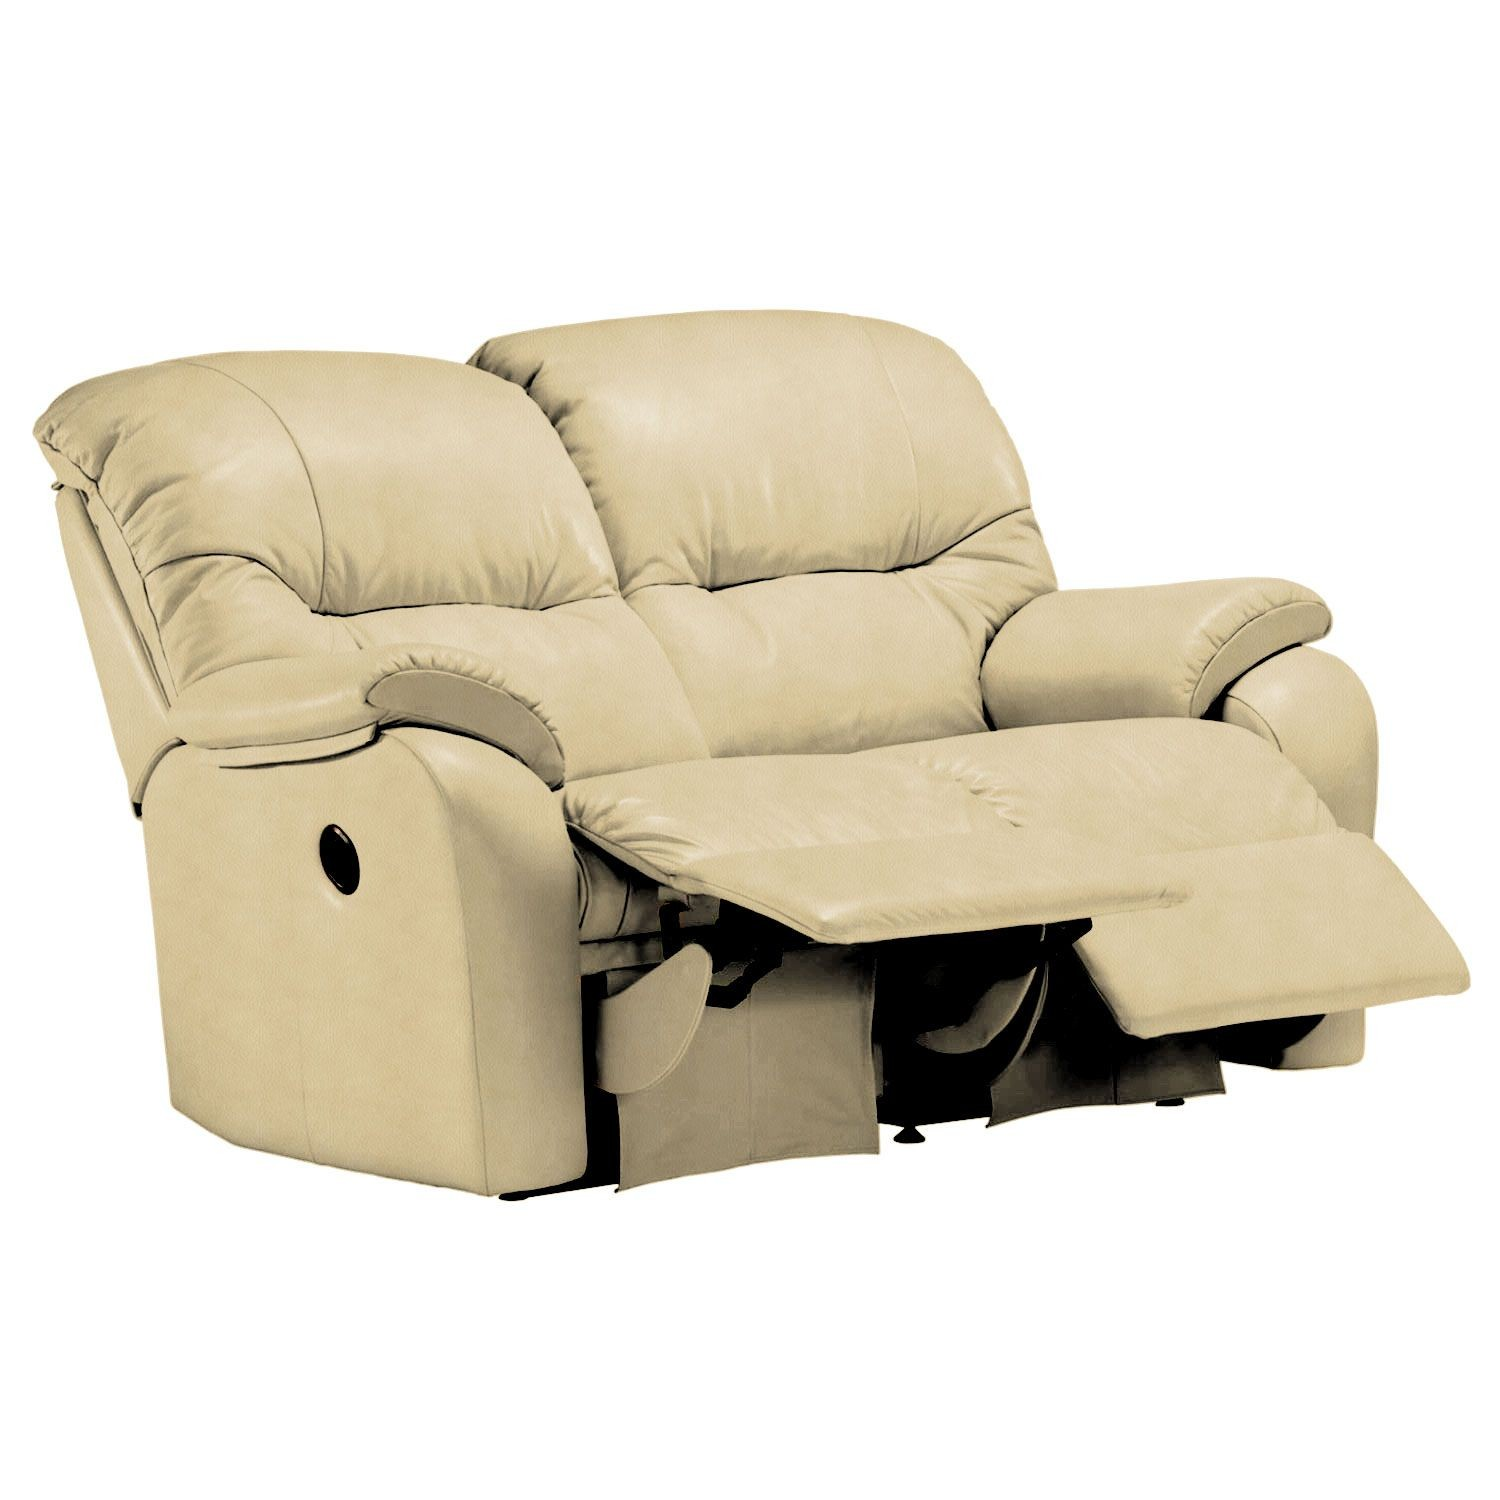 G Plan Mistral Two Seater Left Manual Recliner Leather Sofa